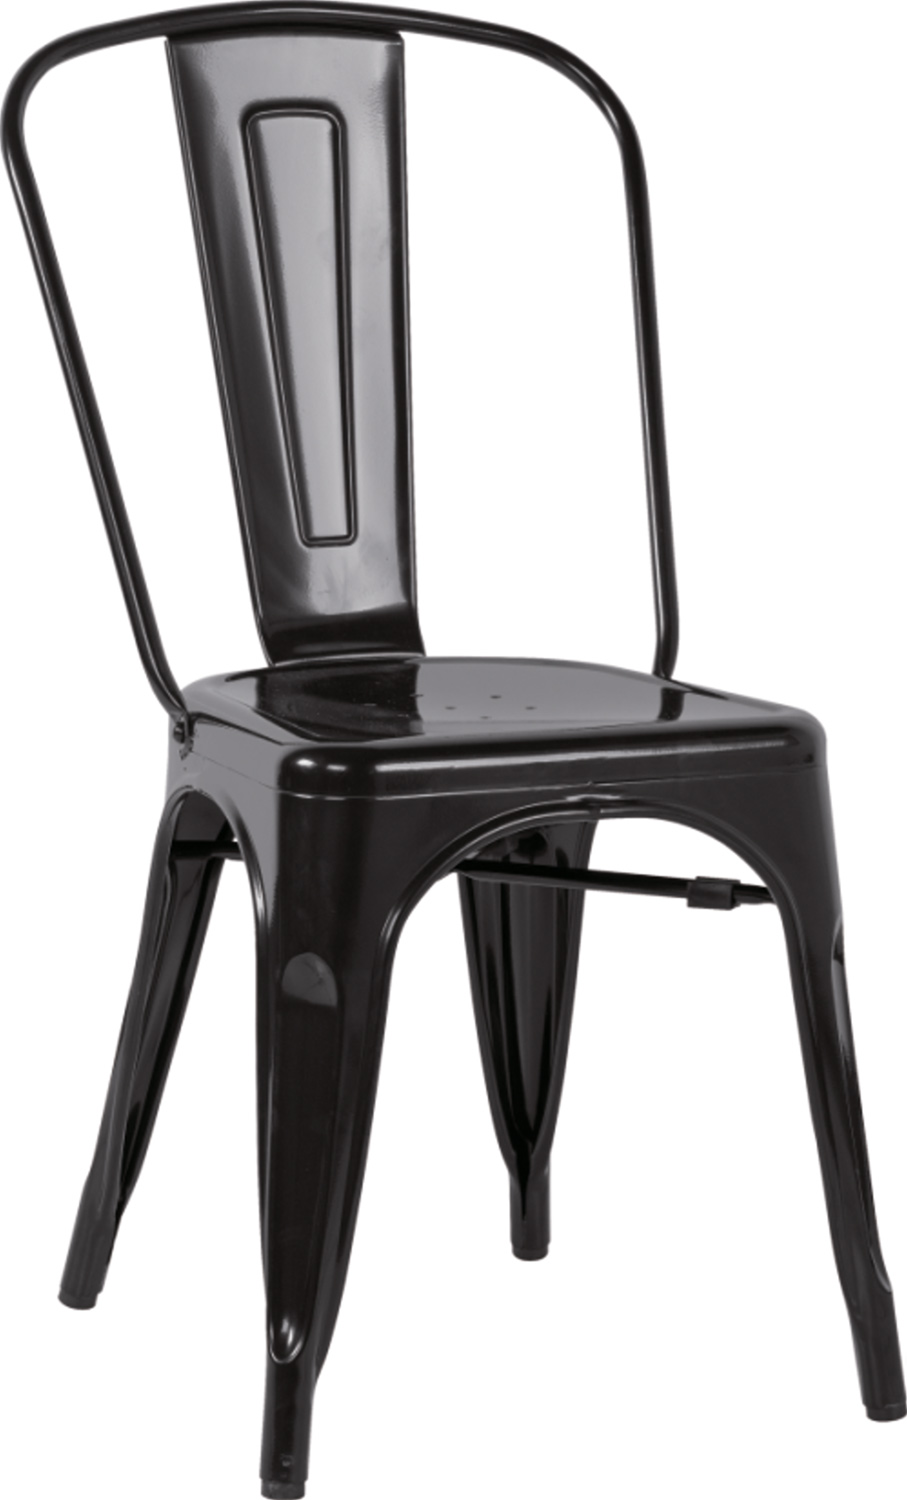 Chintaly Imports 8022 Galvanized Steel Side Chair - Black